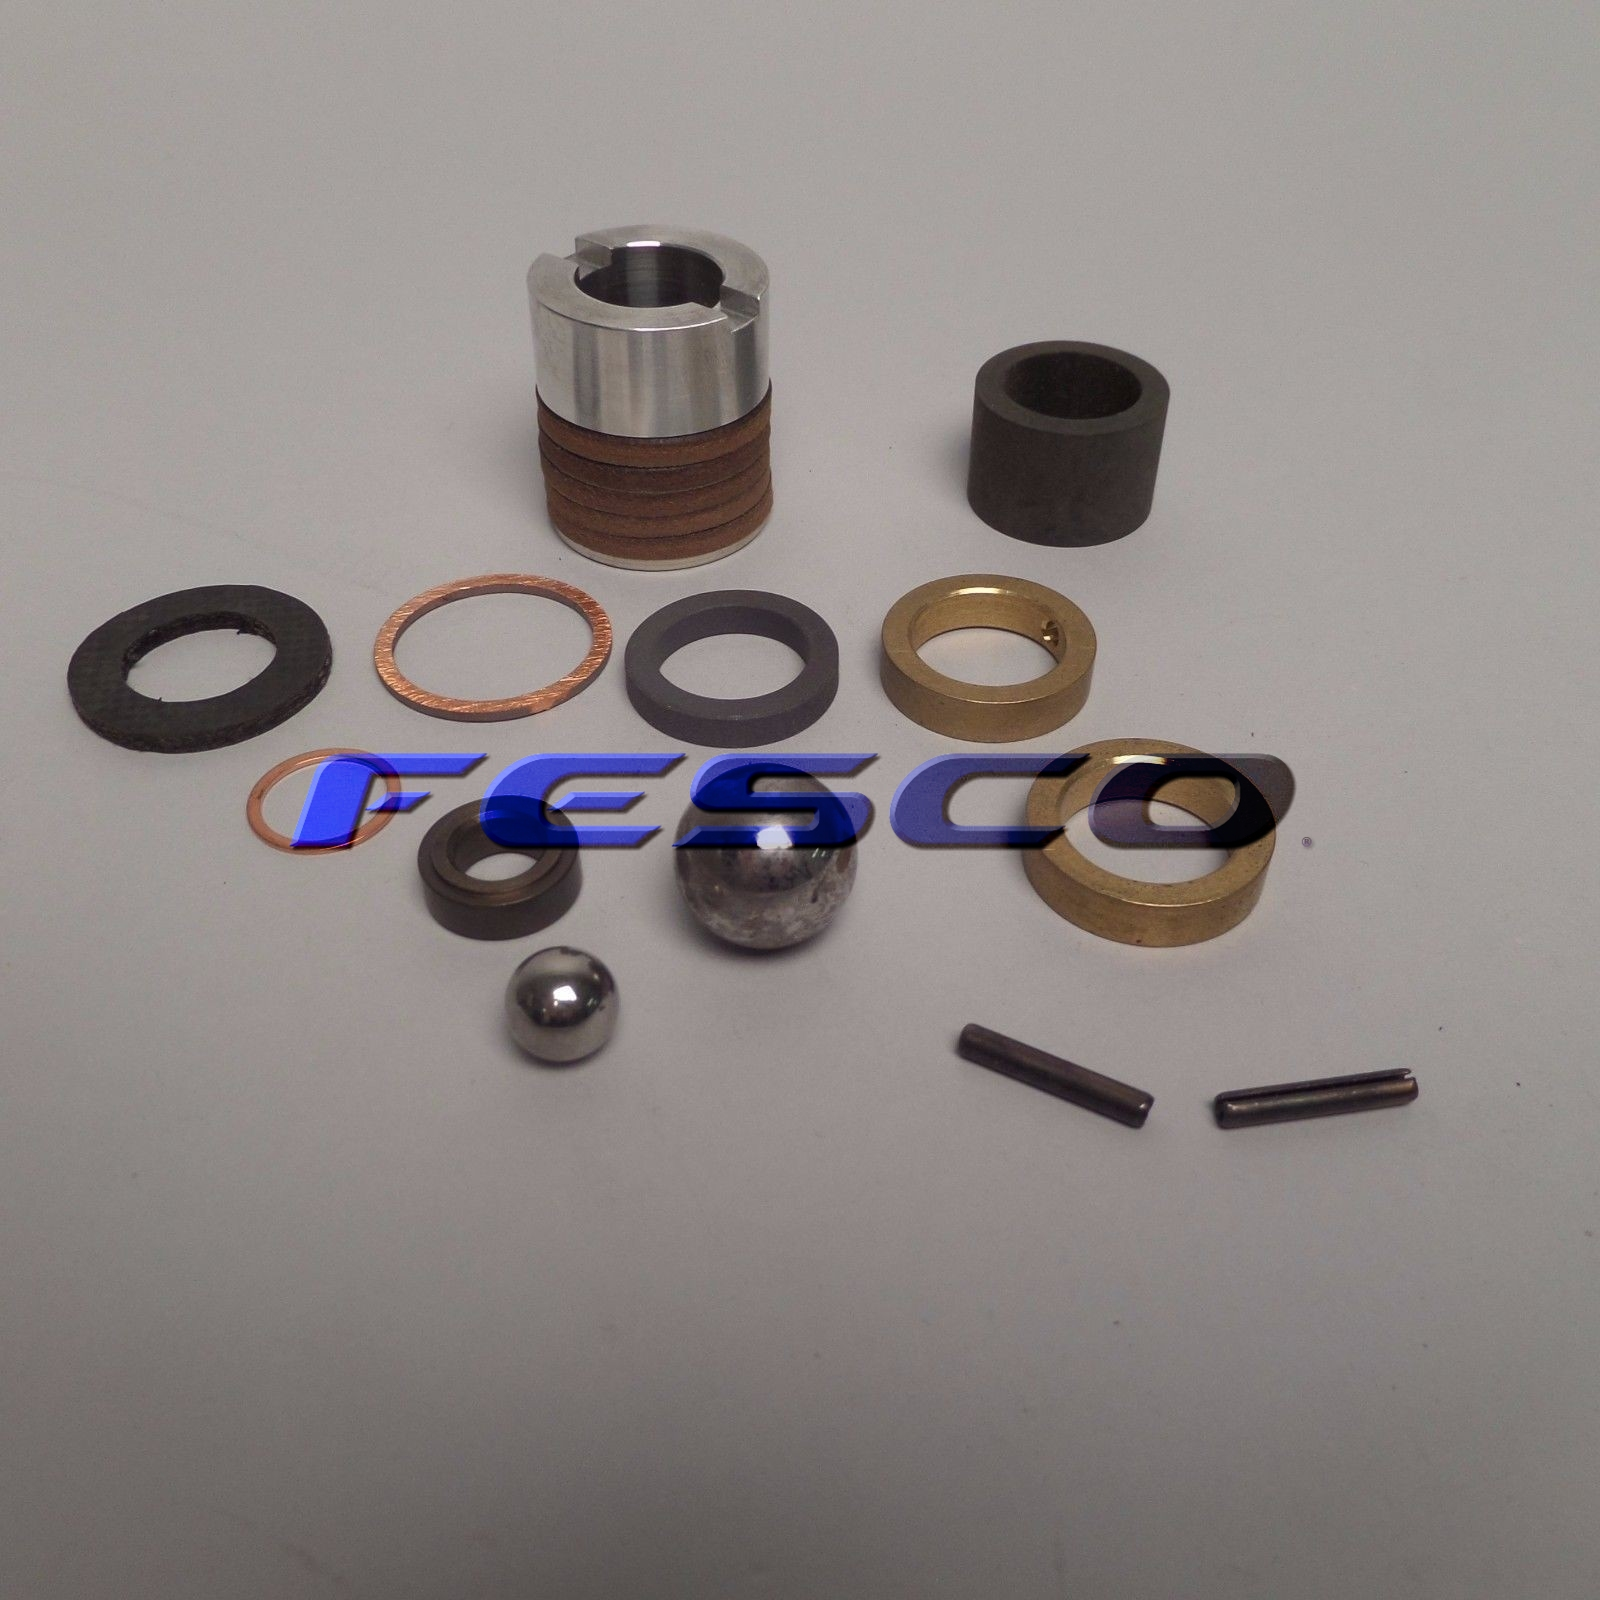 206925 Fluid Section Repair Kit for Graco Fireball 300